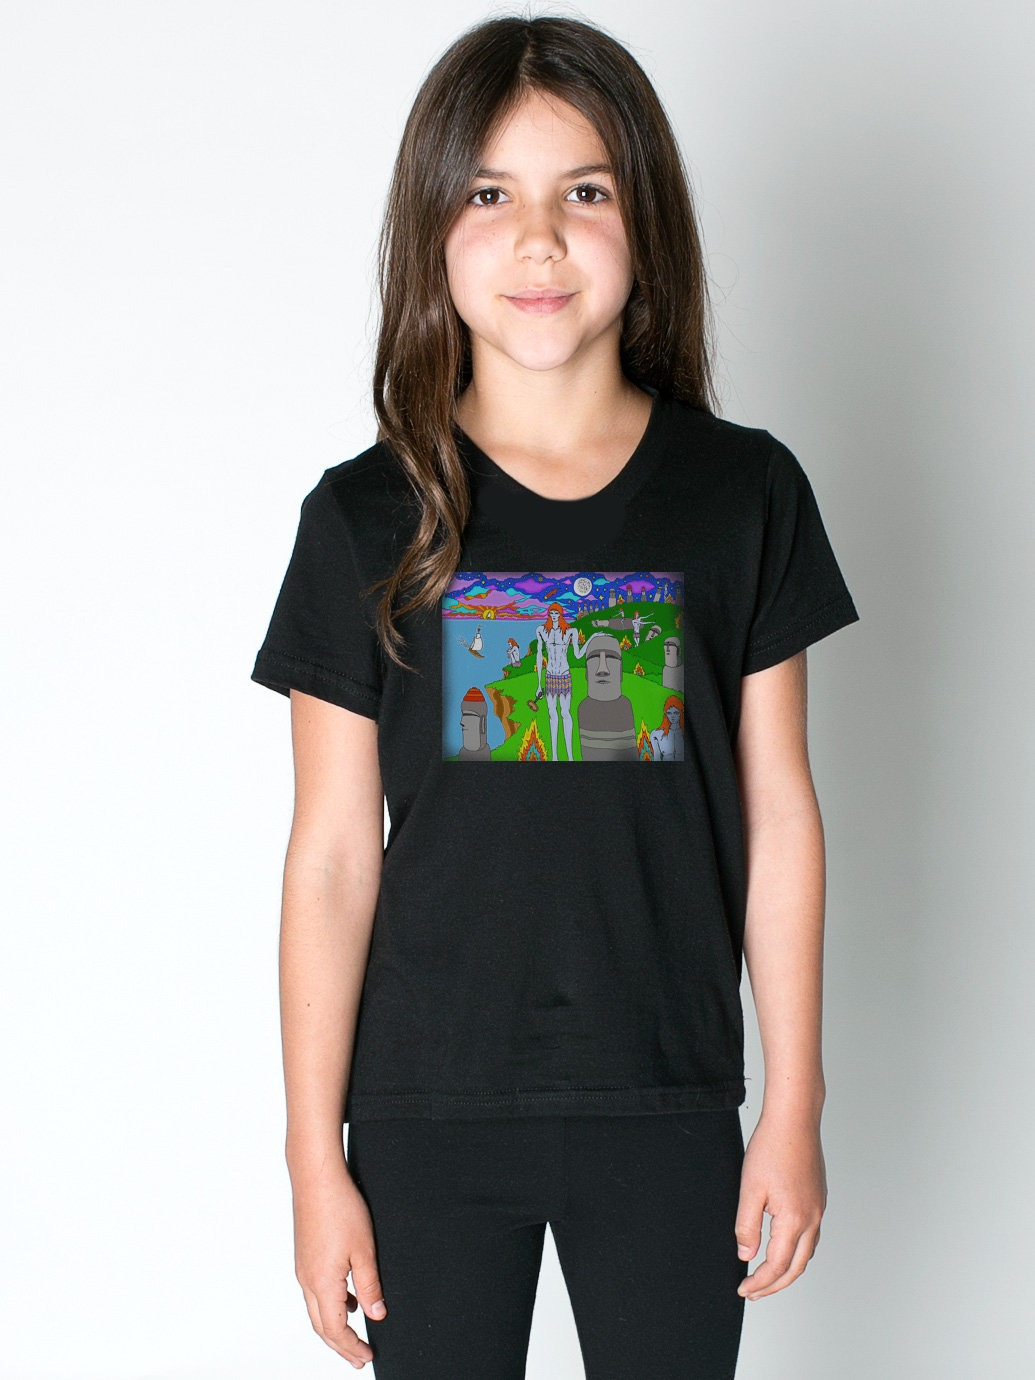 American-Apparel-Kids-Fine-Jersey-VNeck-TShirt-Female-Black copy 9.jpeg